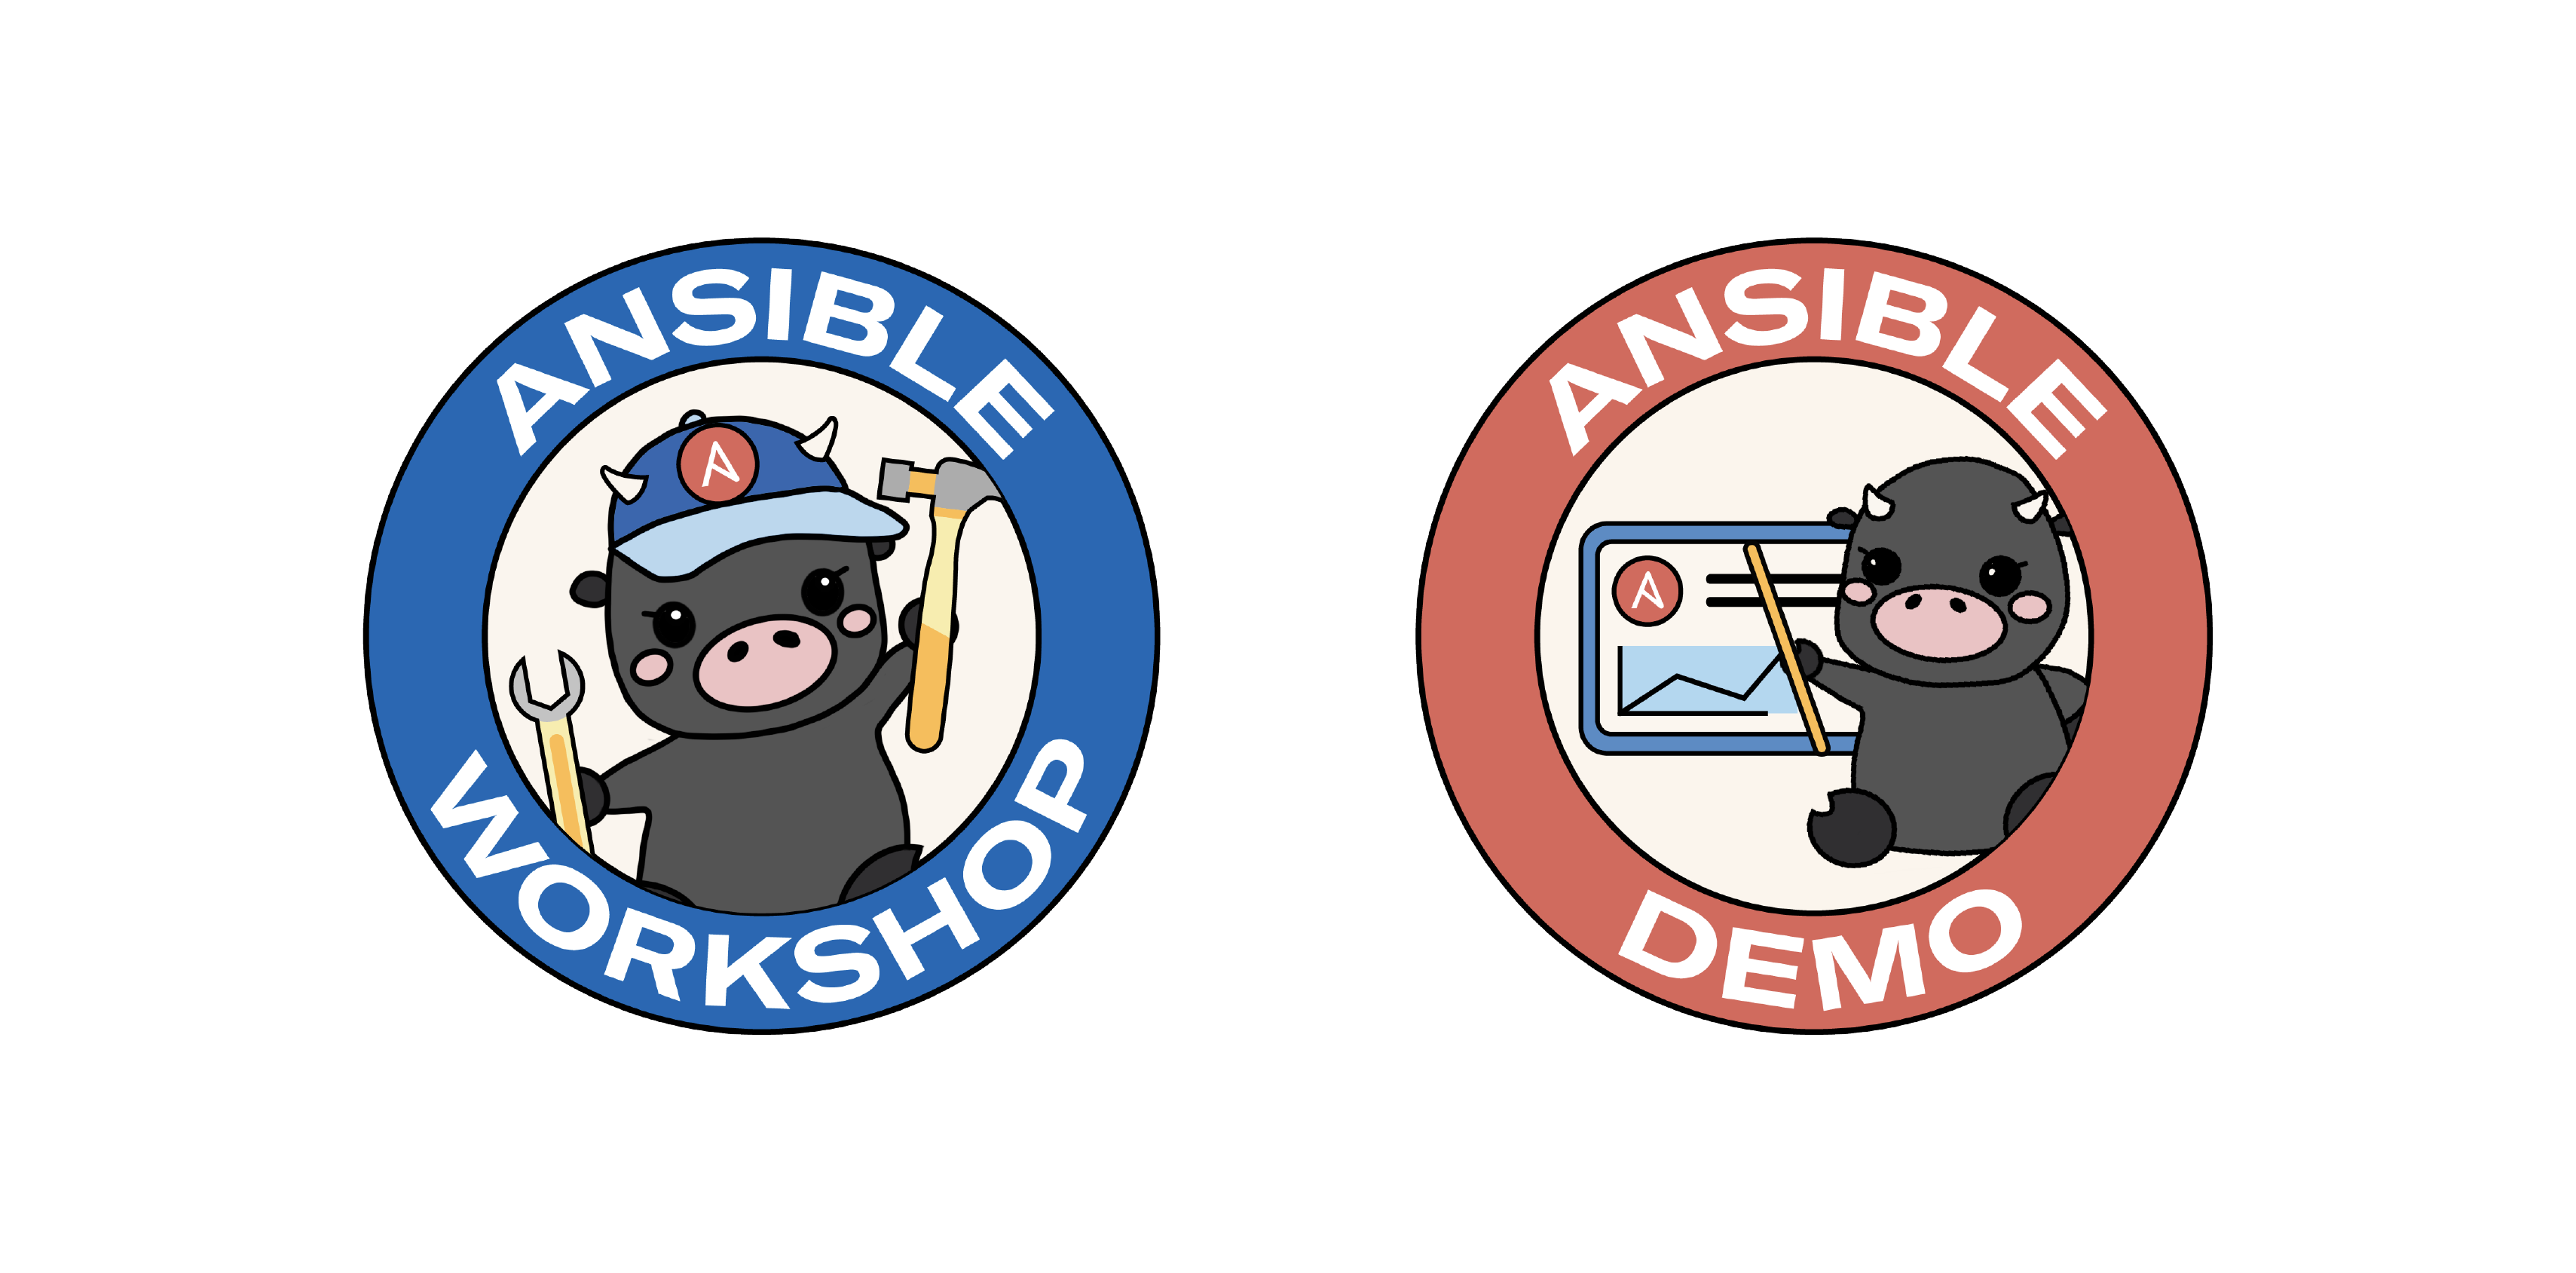 New Ansible services logos